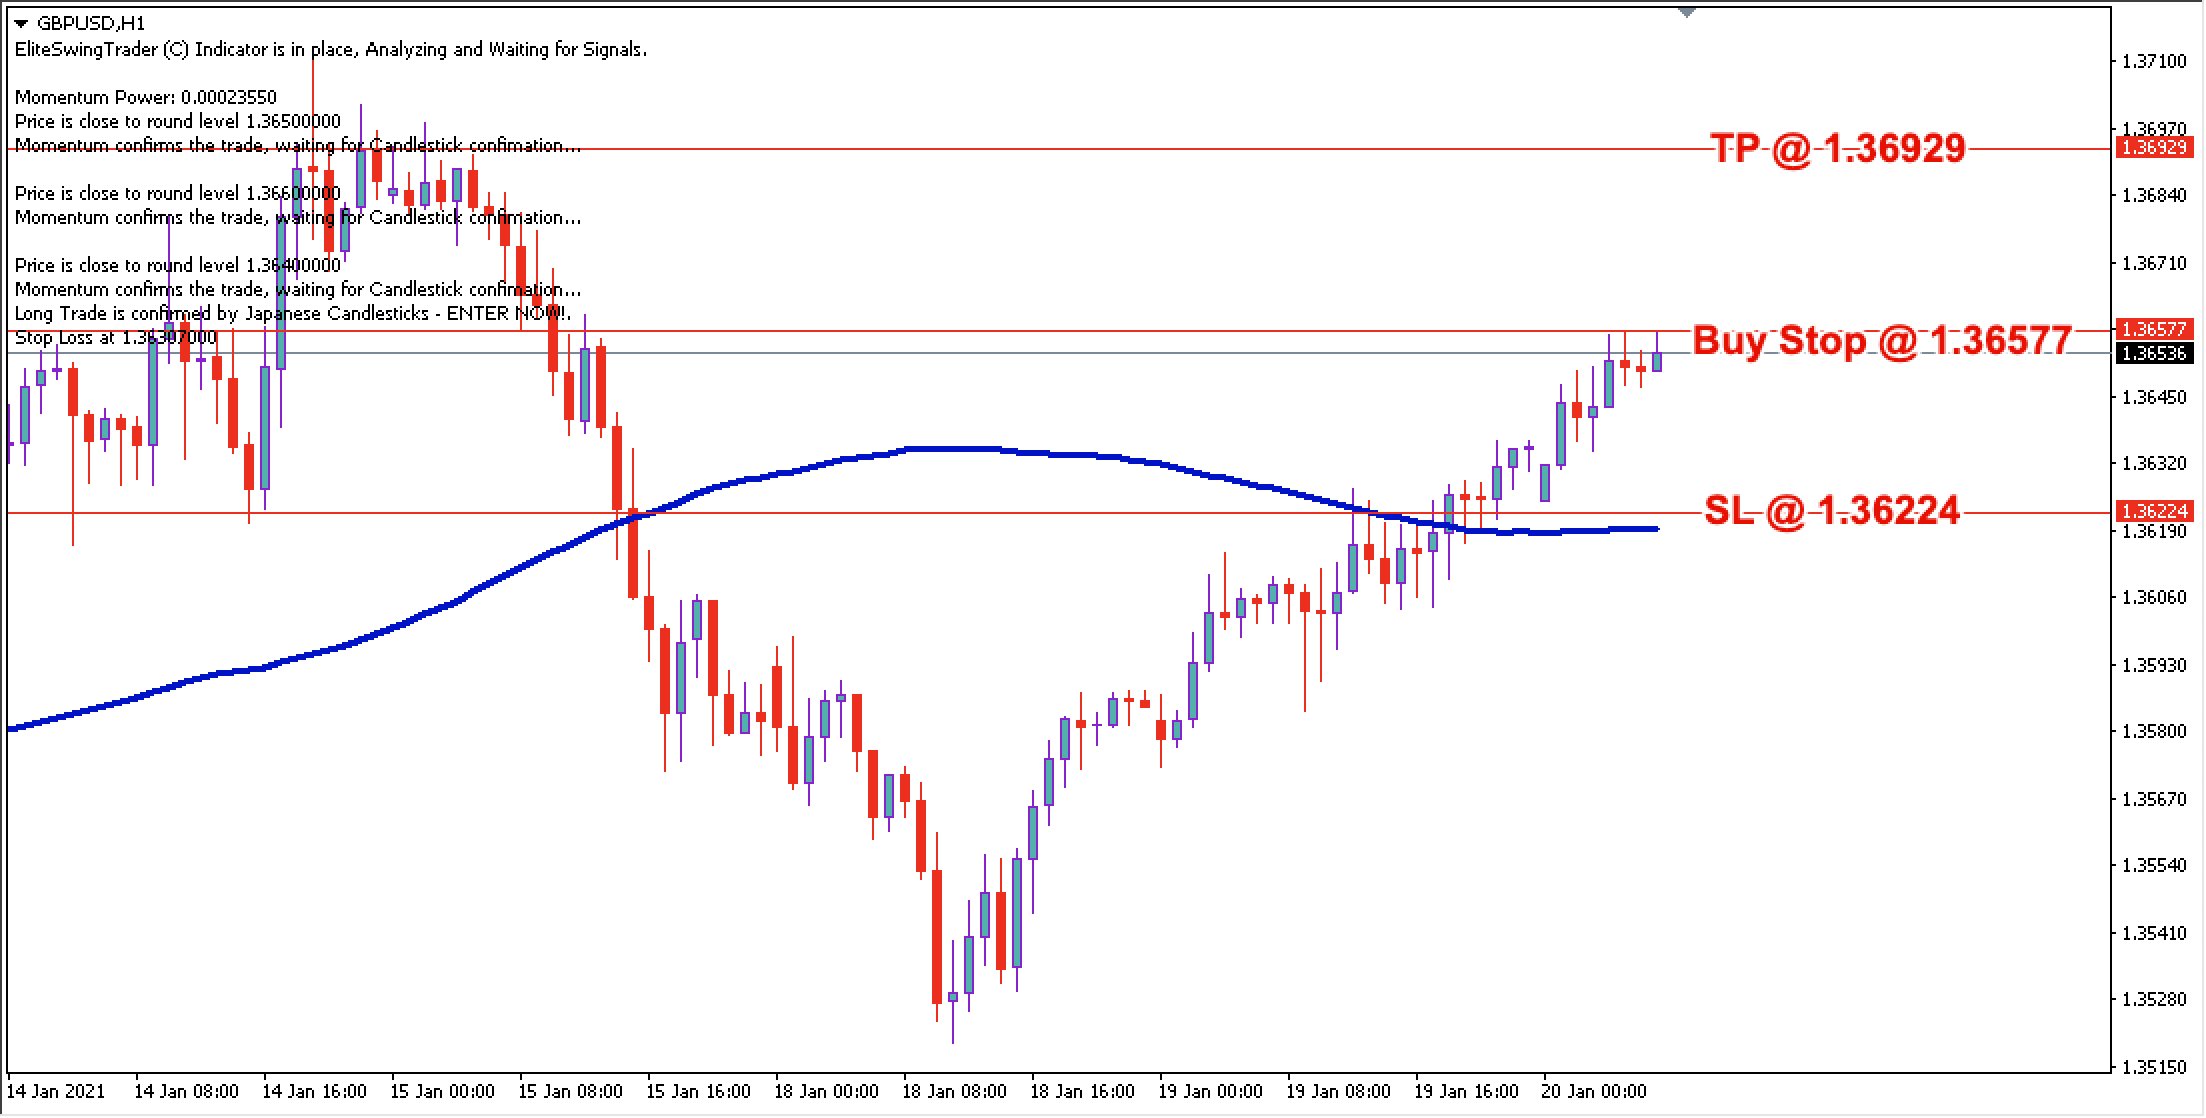 GBP/USD Daily Price Forecast - 20th Jan 2021